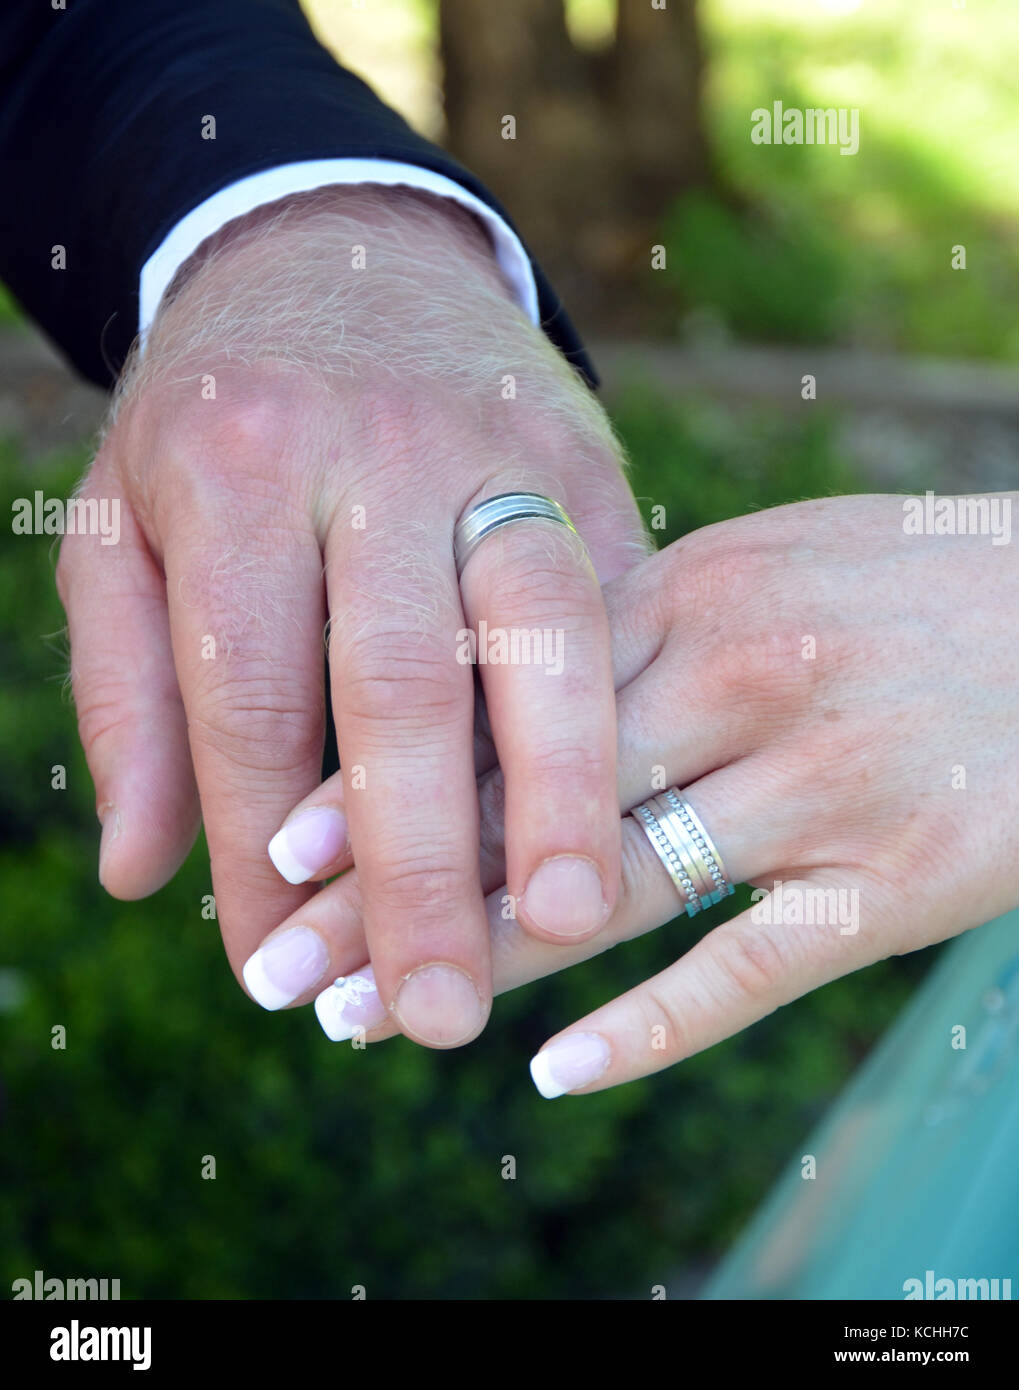 picture of a hands of a bride and groom with wedding rings - Stock Image